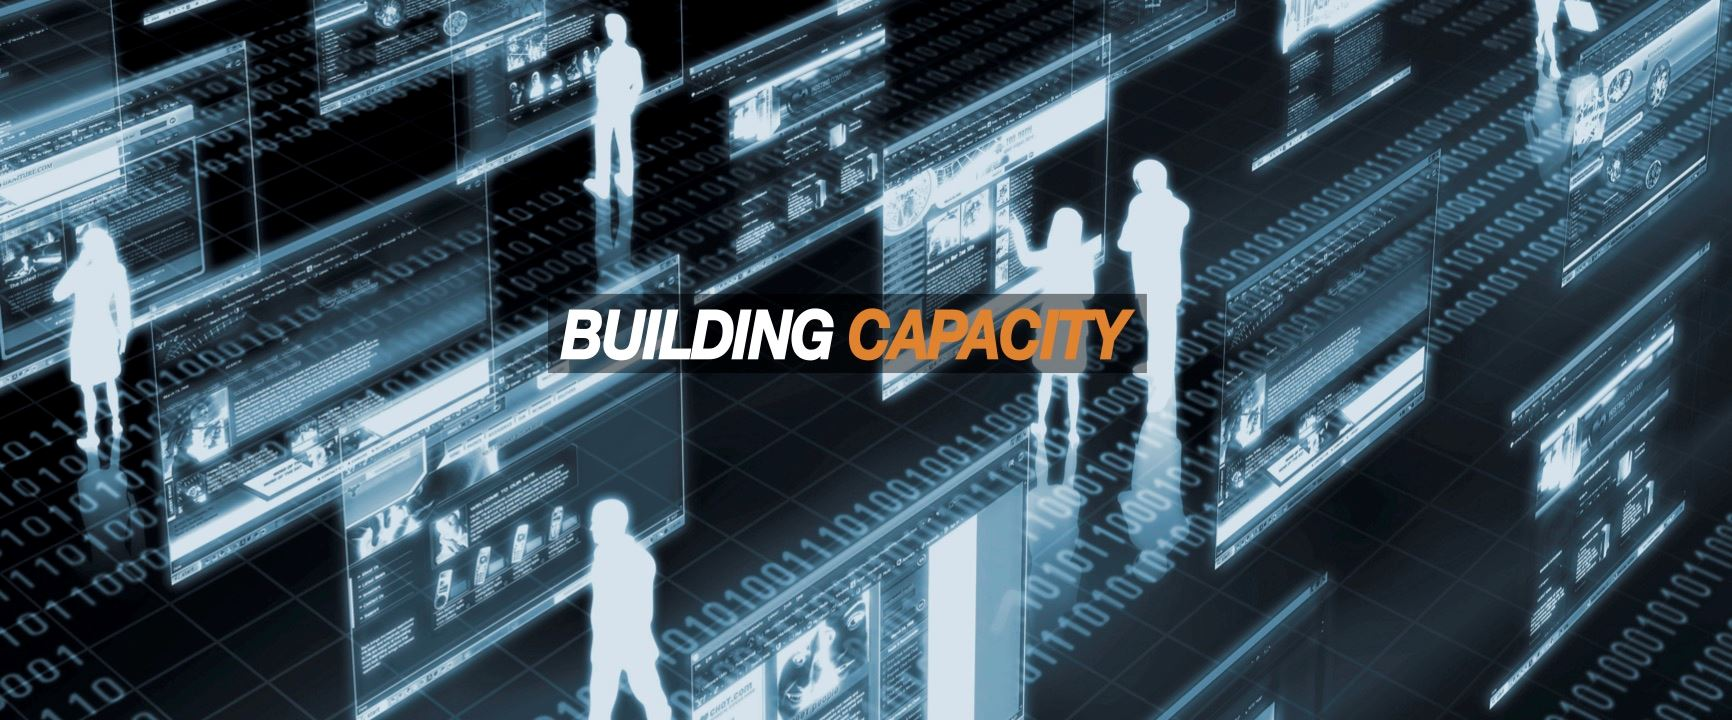 buildingcapacity web banner2